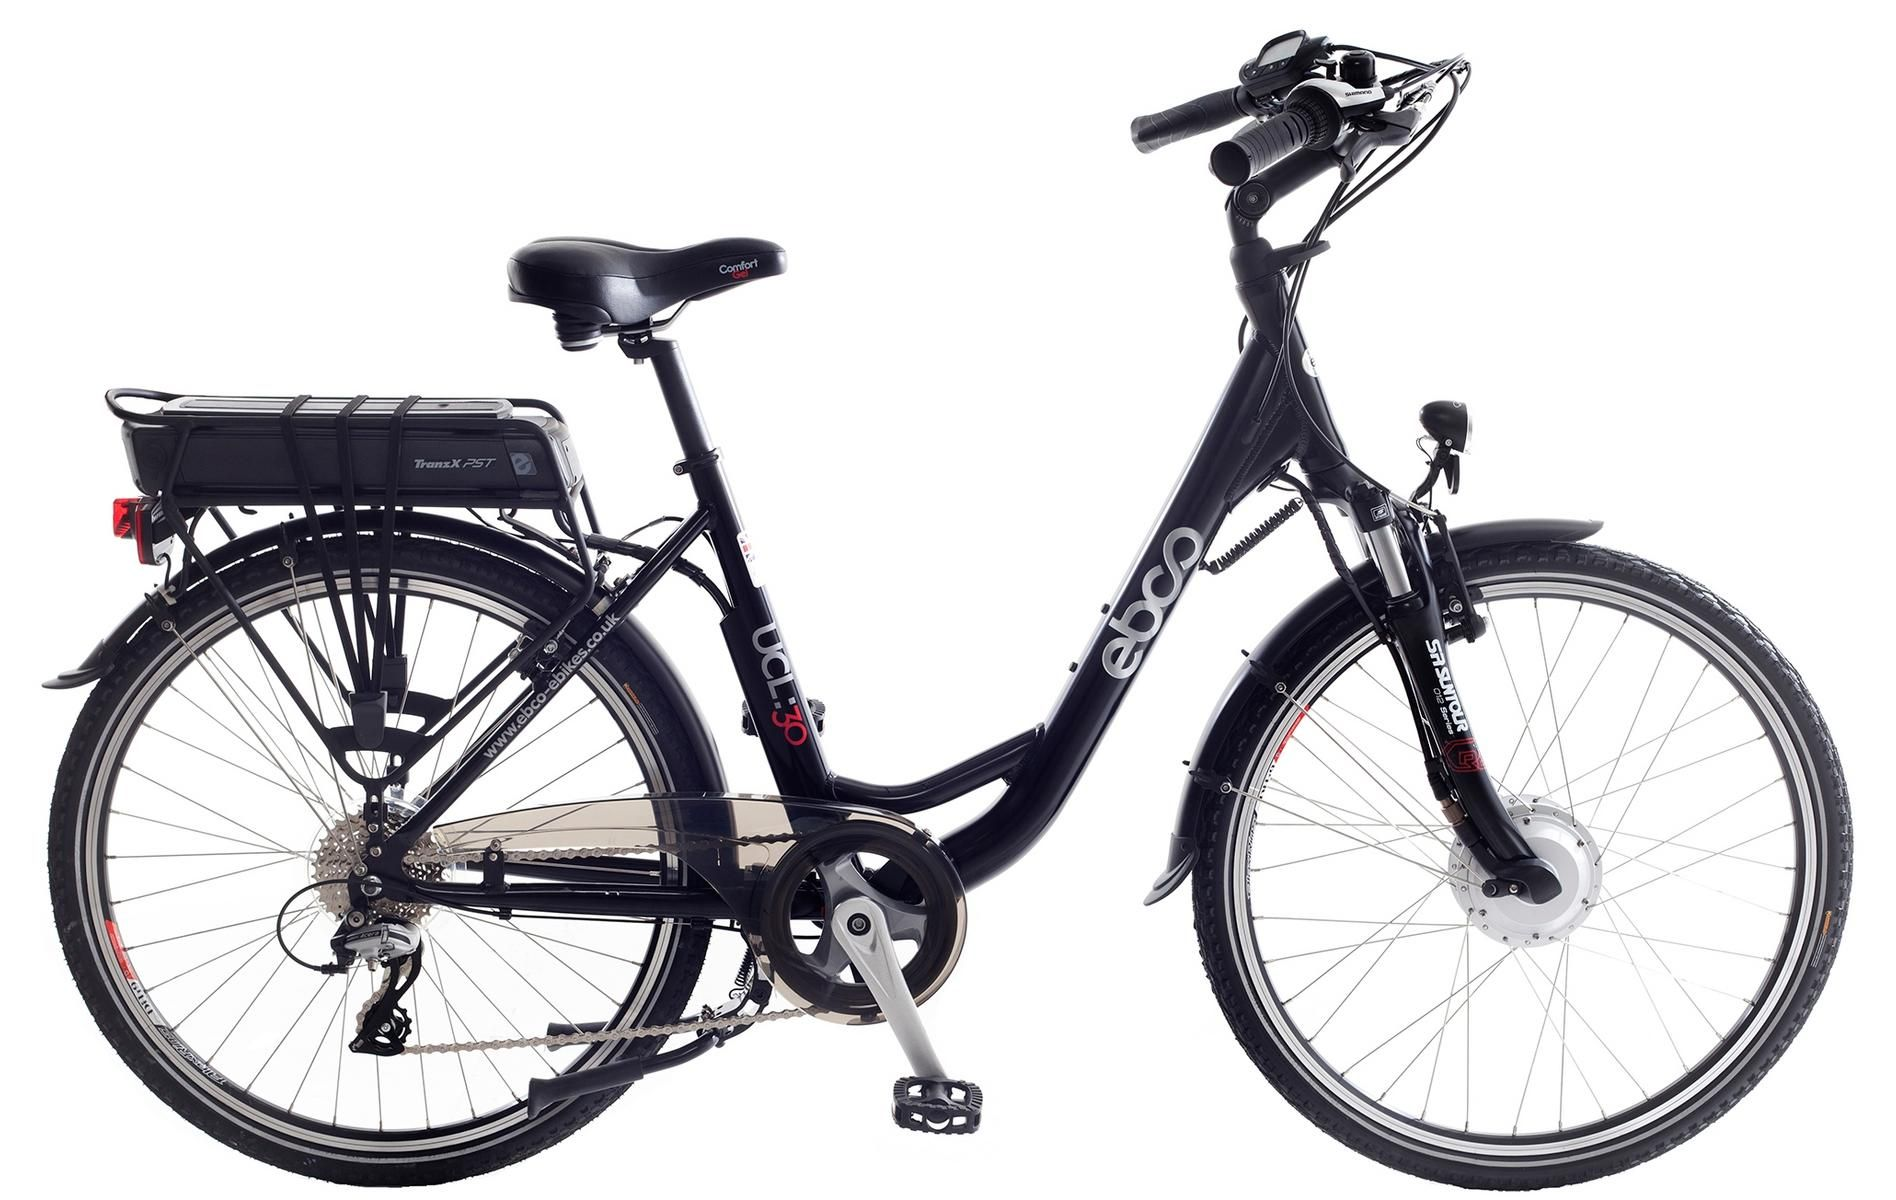 EBCO UCL30 Electric Bike (With images) Hybrid bike